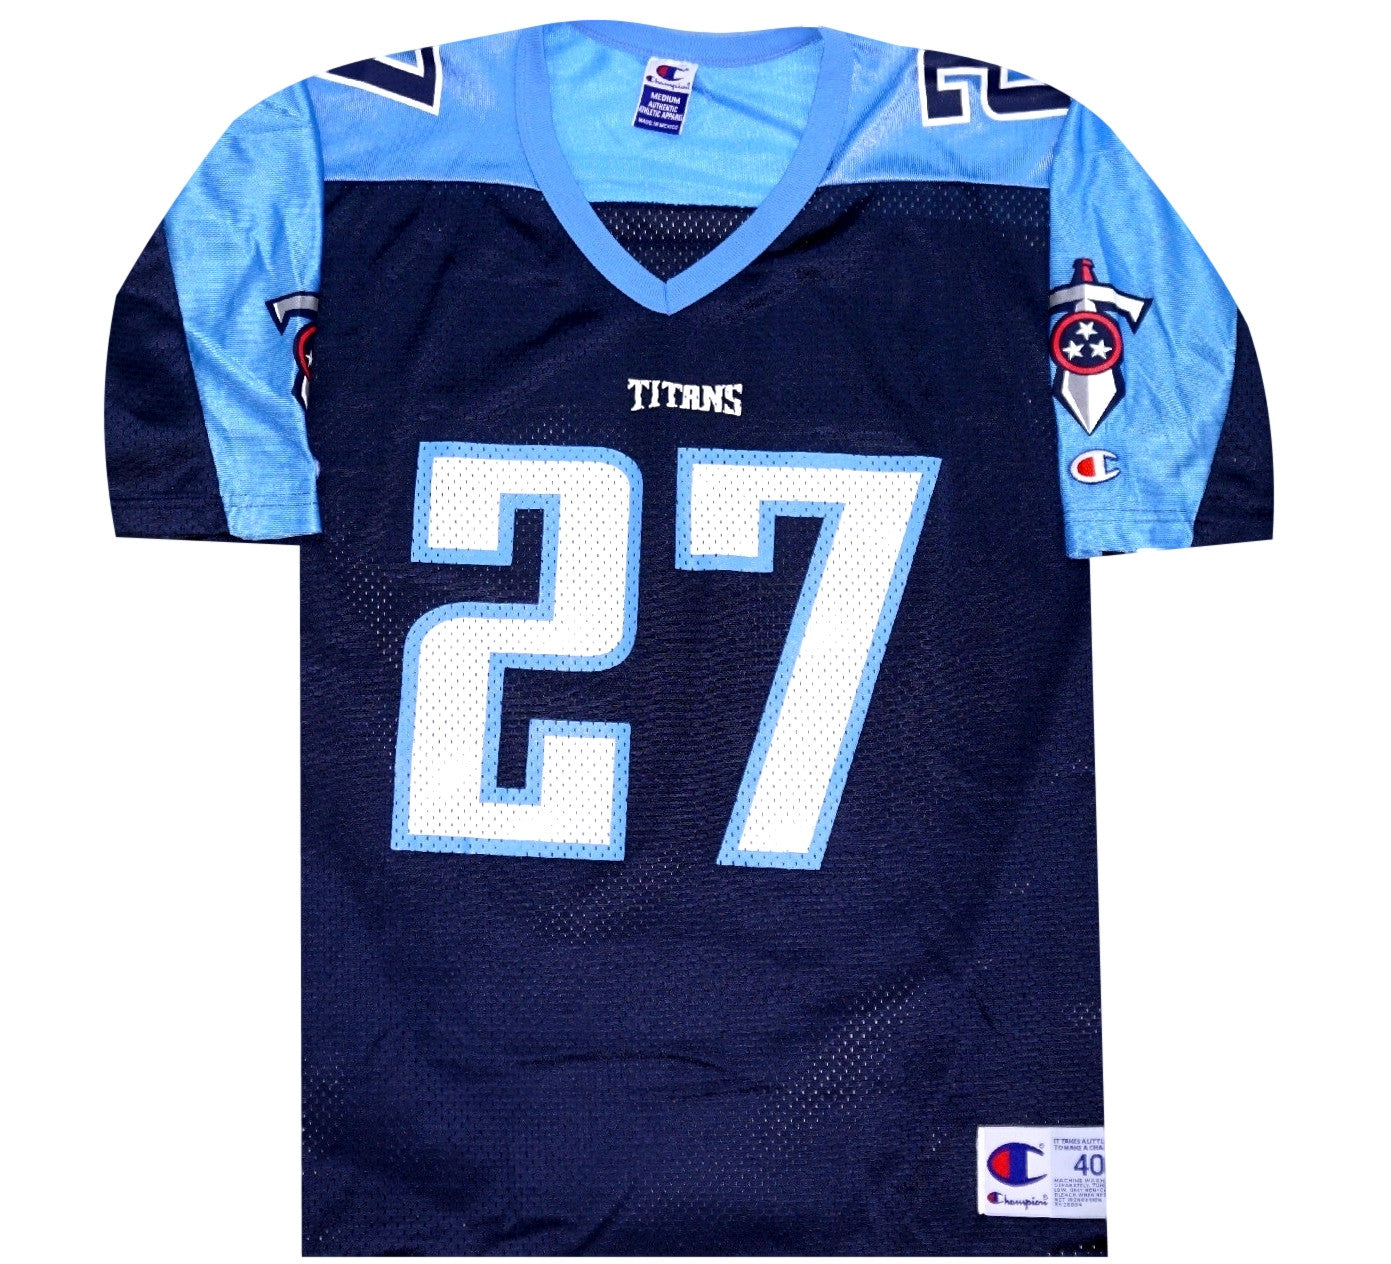 Eddie George Titans Jersey - And Still